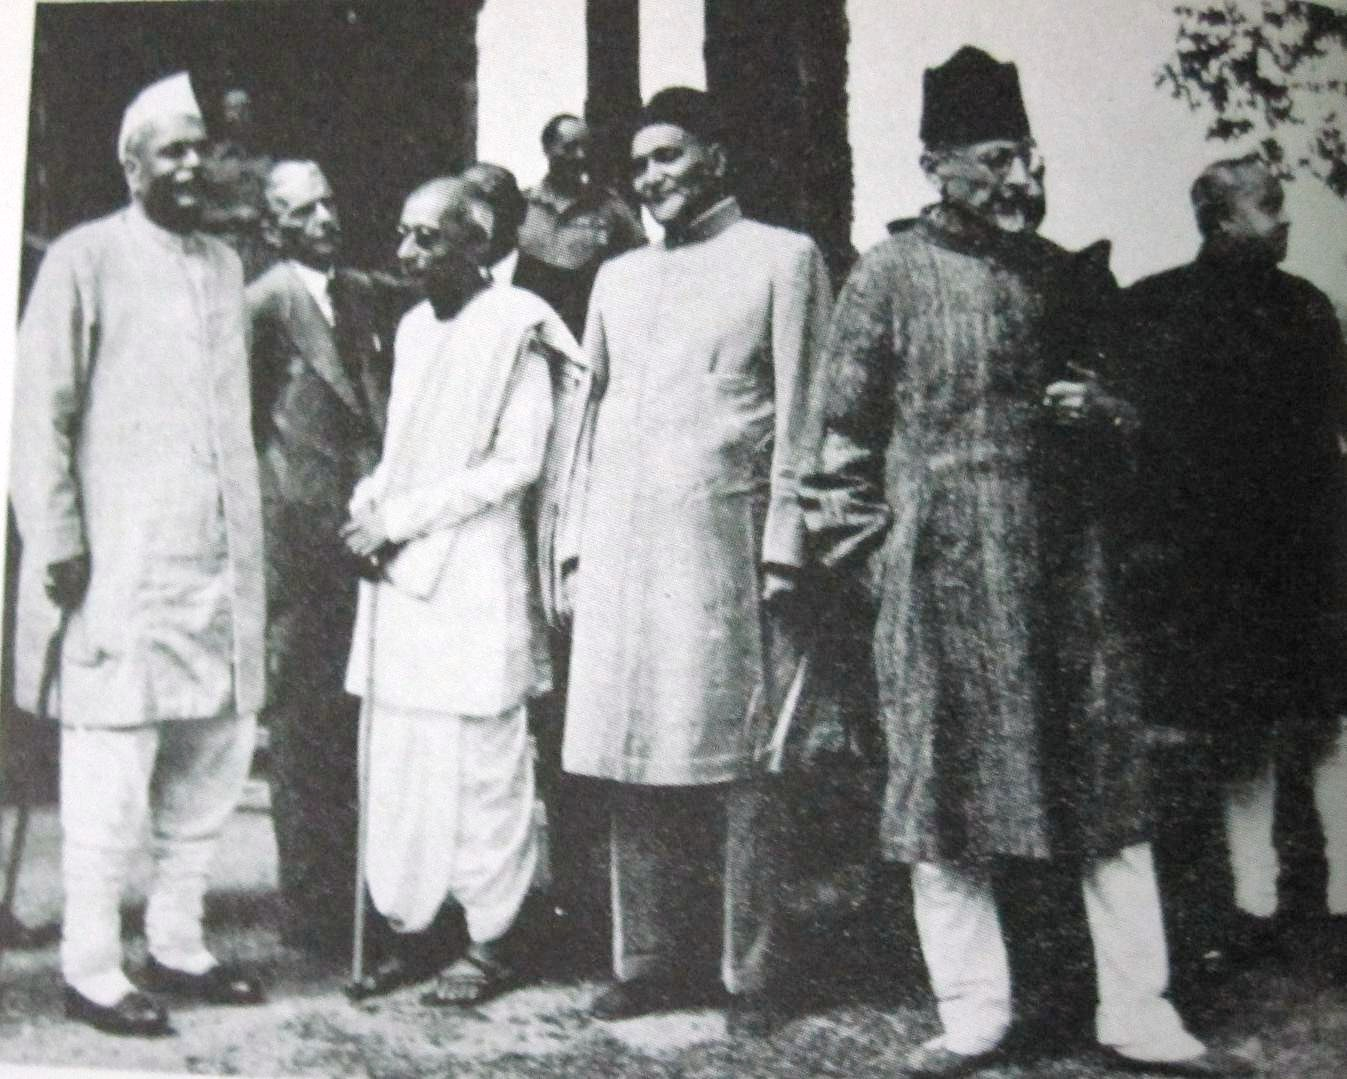 Photo of Rajendra Prasad, Jinnah, C. Rajagopalachari and Maulana Azad